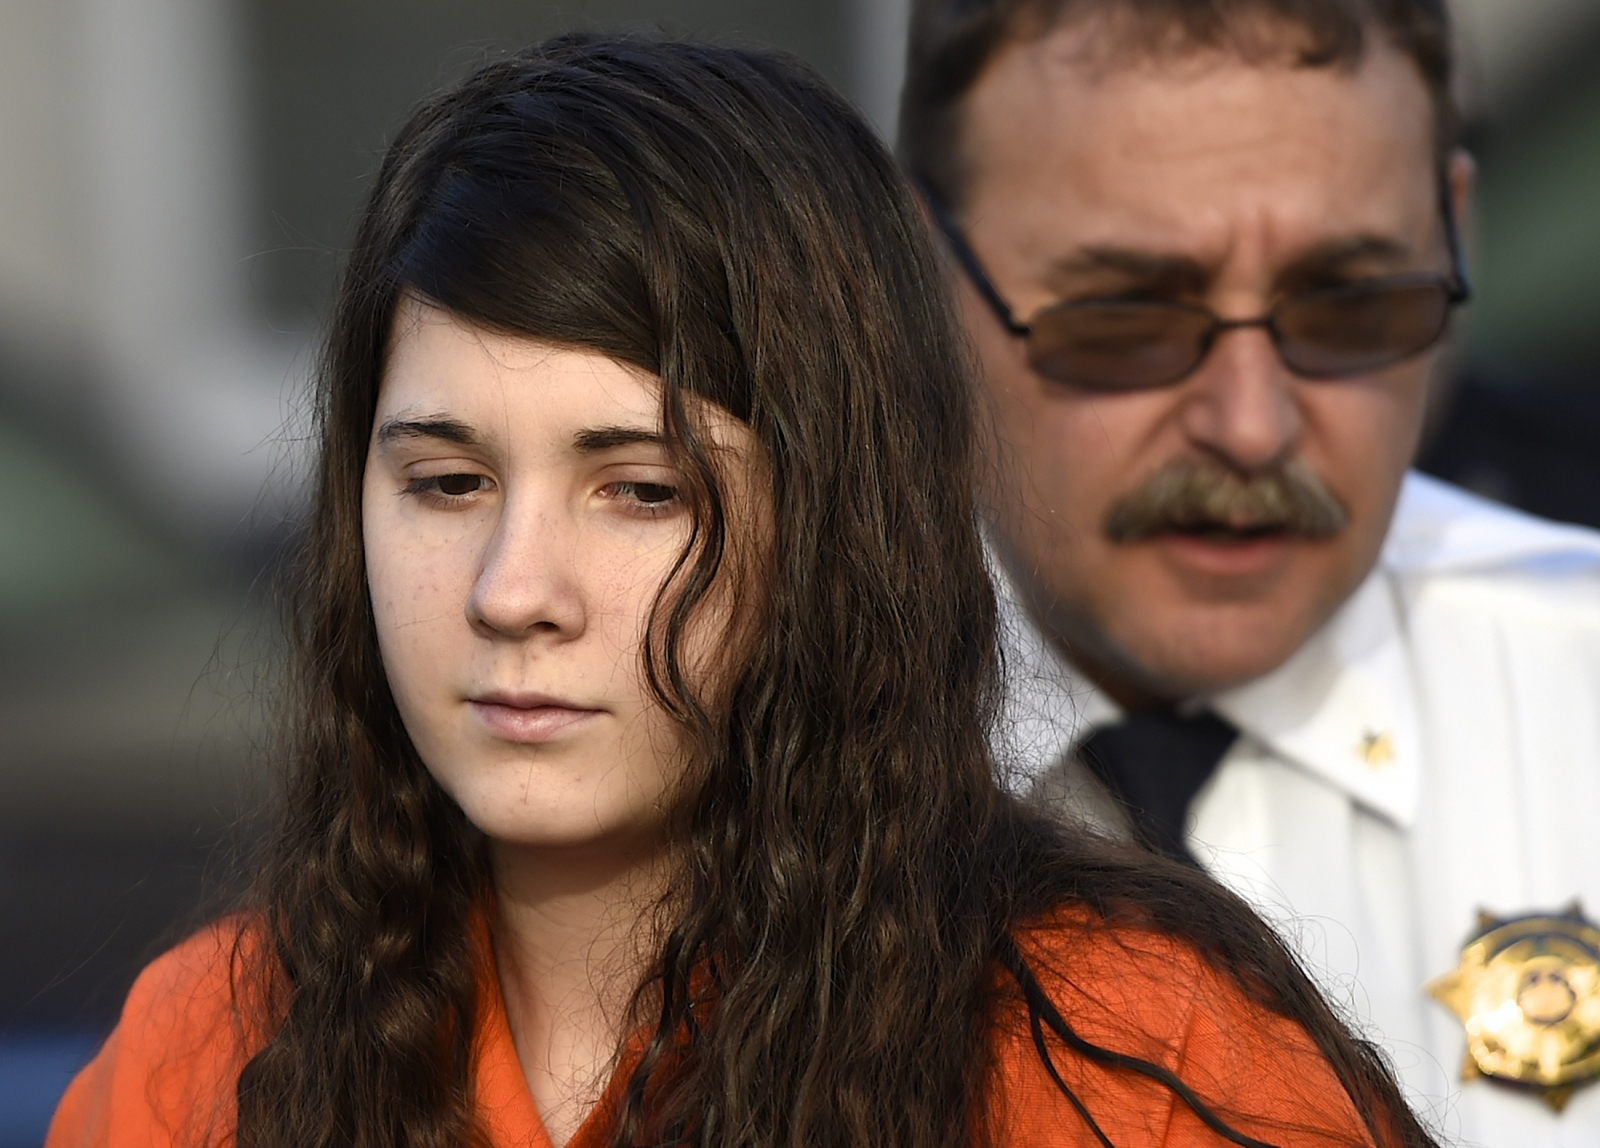 Miranda Barbour and husband Elytte have avoided the death penalty for killing Troy LaFerrara